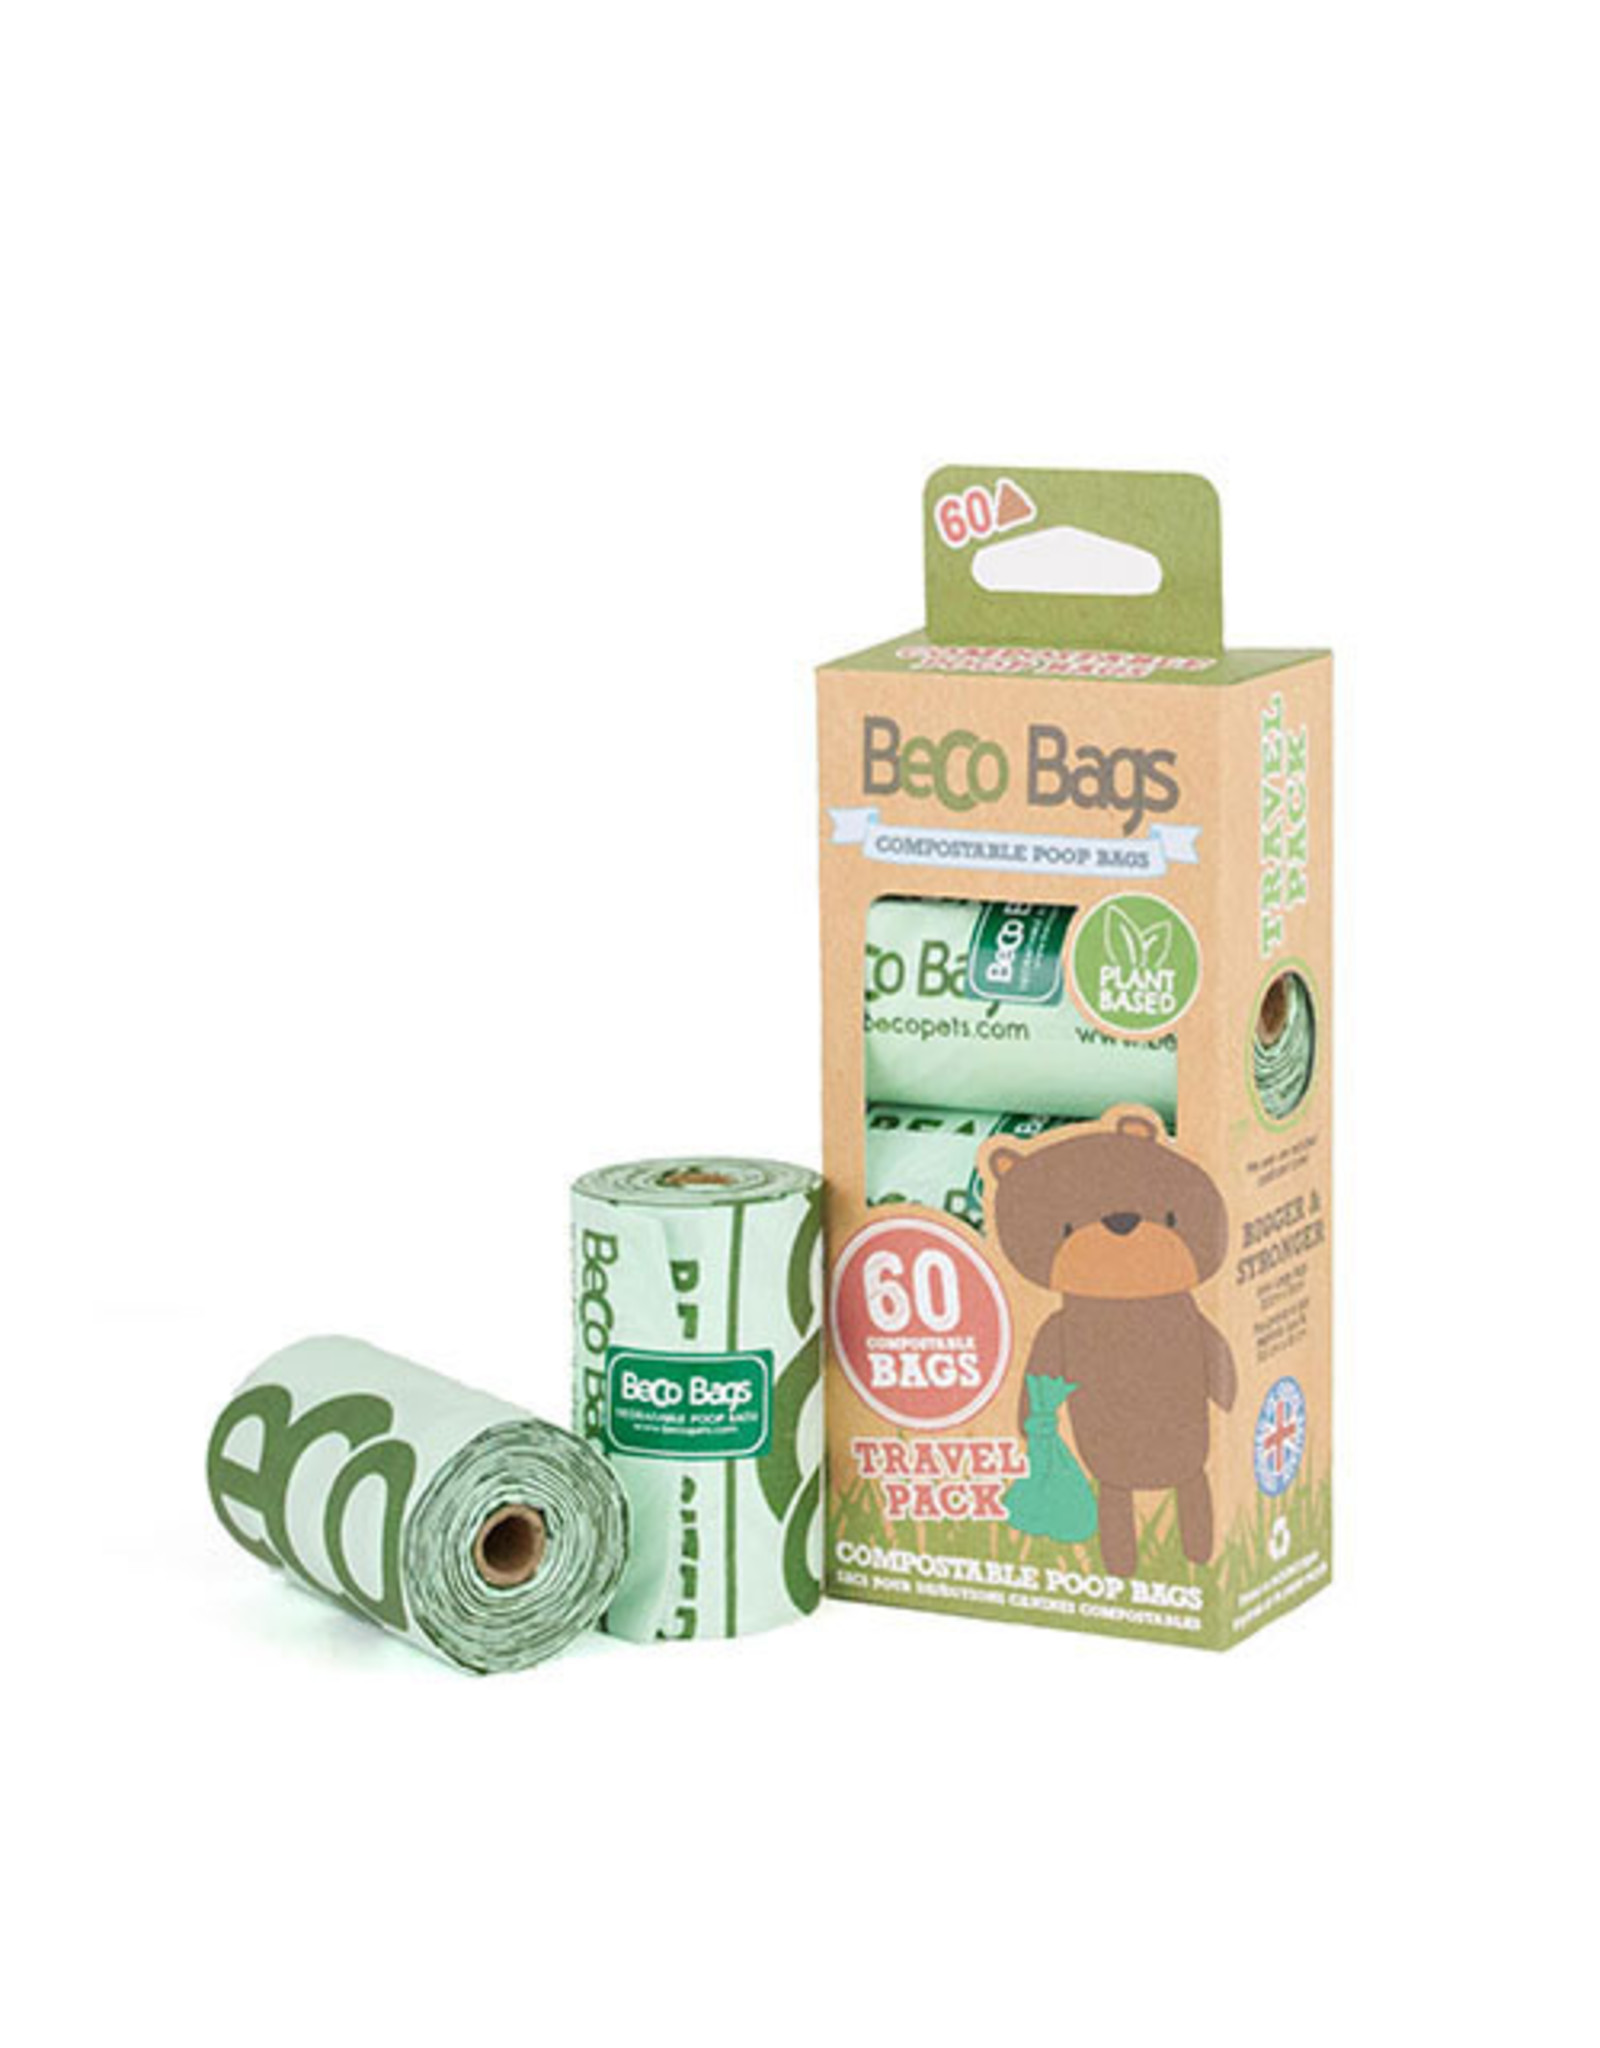 Beco Bags - Compostable 4pk - 60 bags